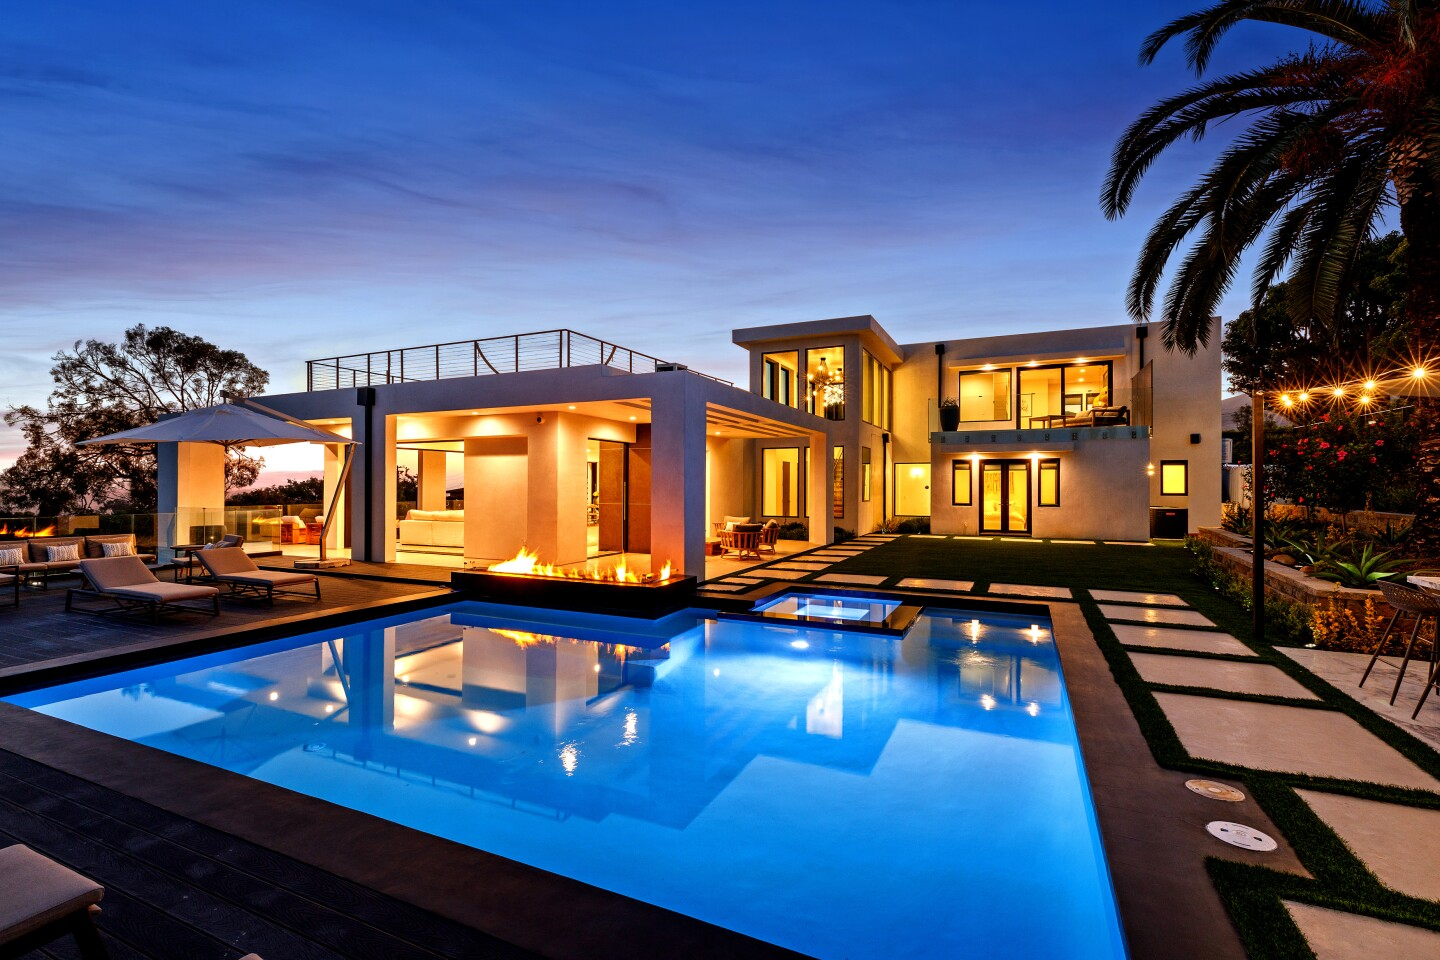 The newly-finished home near Zuma Beach is geared for indoor-outdoor living with pocketing walls, wrap-around terraces, balconies and a rooftop deck. Listed for $12 million, the contemporary-style house includes such amenities as a gym, movie theater and outdoor kitchen. Five bedrooms and six bathrooms are spread across two floors. Inside, some 6,500 square feet of interior features polished cement floors, artistic walls and a floating staircase. Walls of glass take in sweeping ocean views.